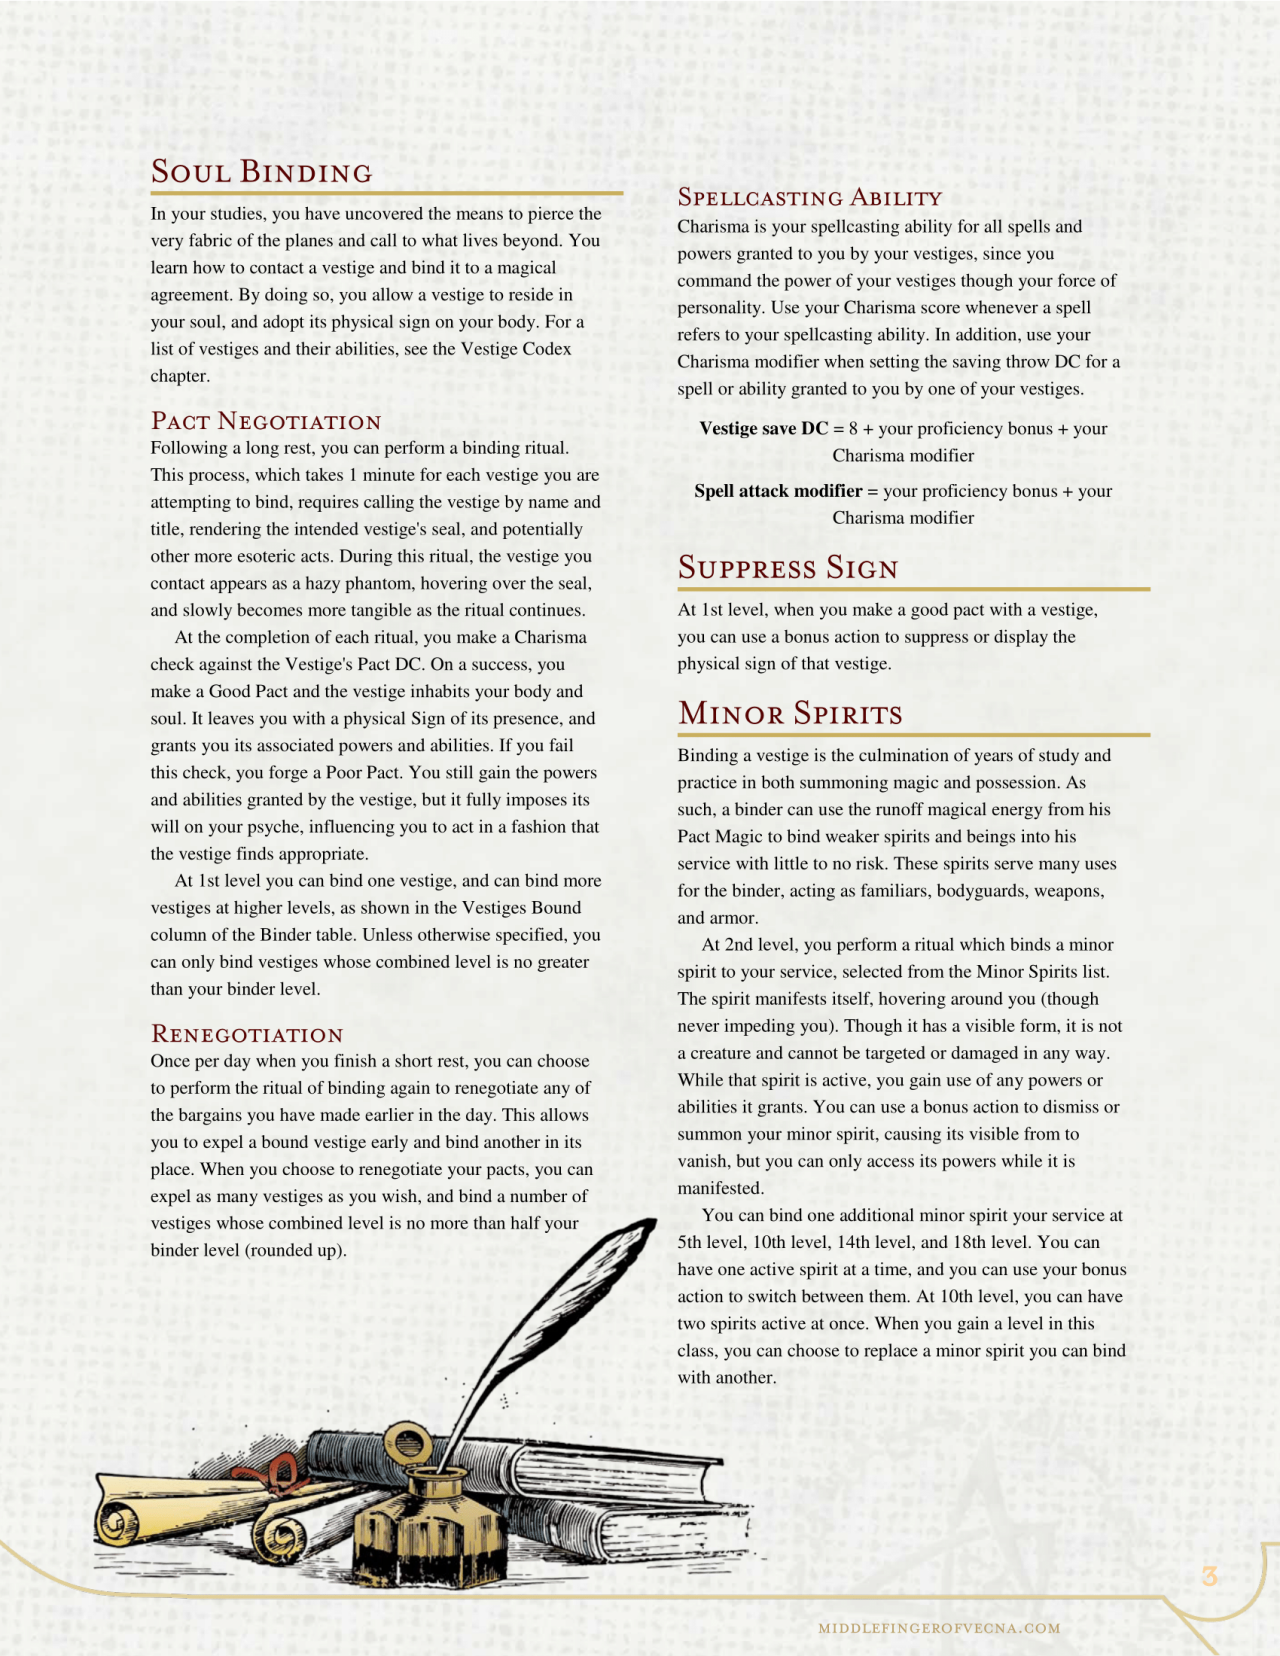 Pin by Ryan Griffiths on First Campaign in 2019 | Dragon rpg